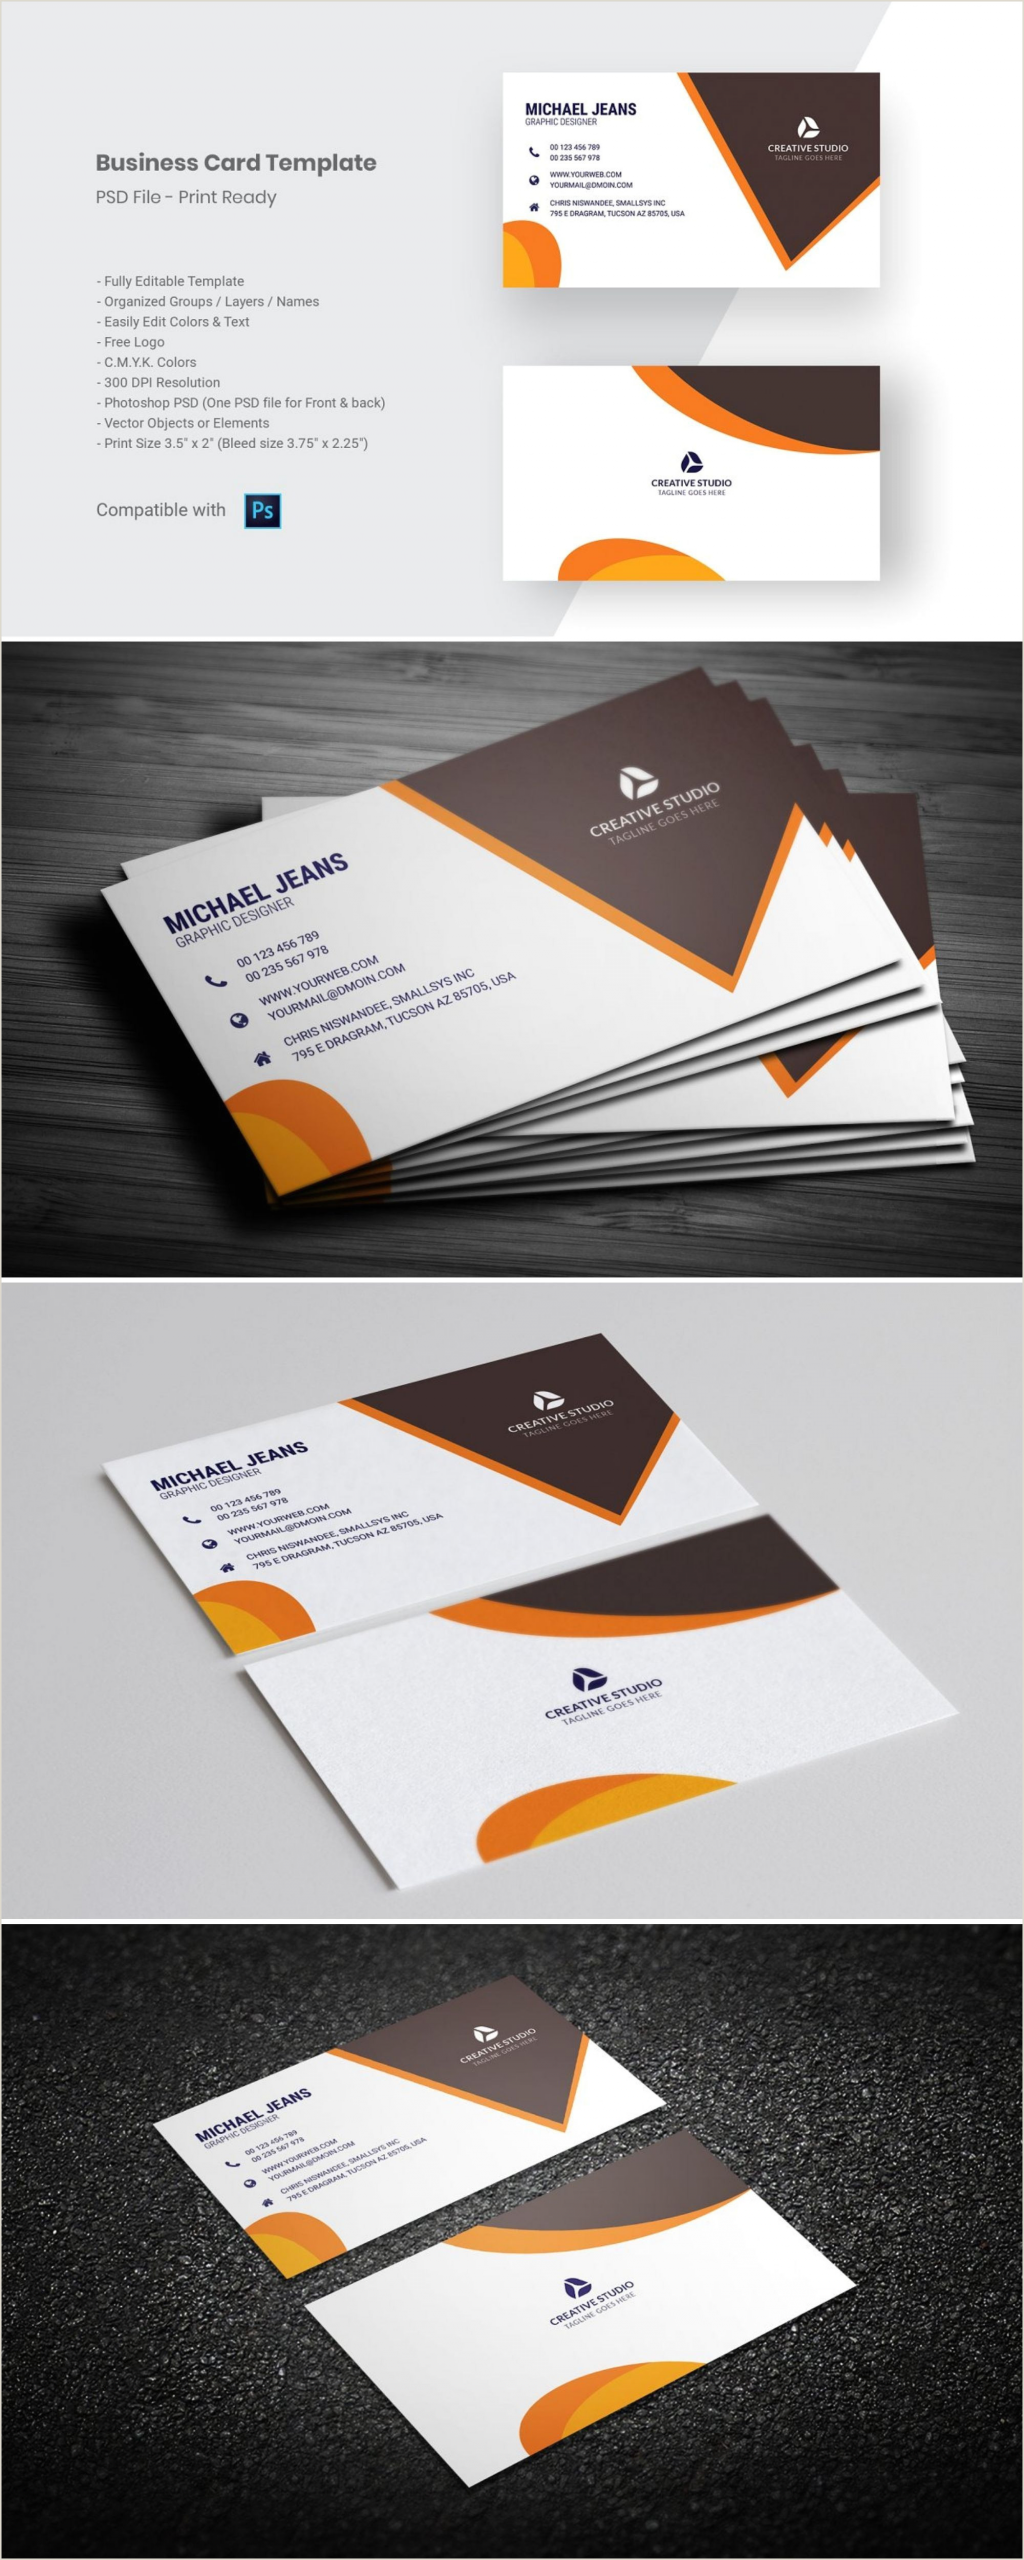 Call Cards Samples Modern Business Card Template